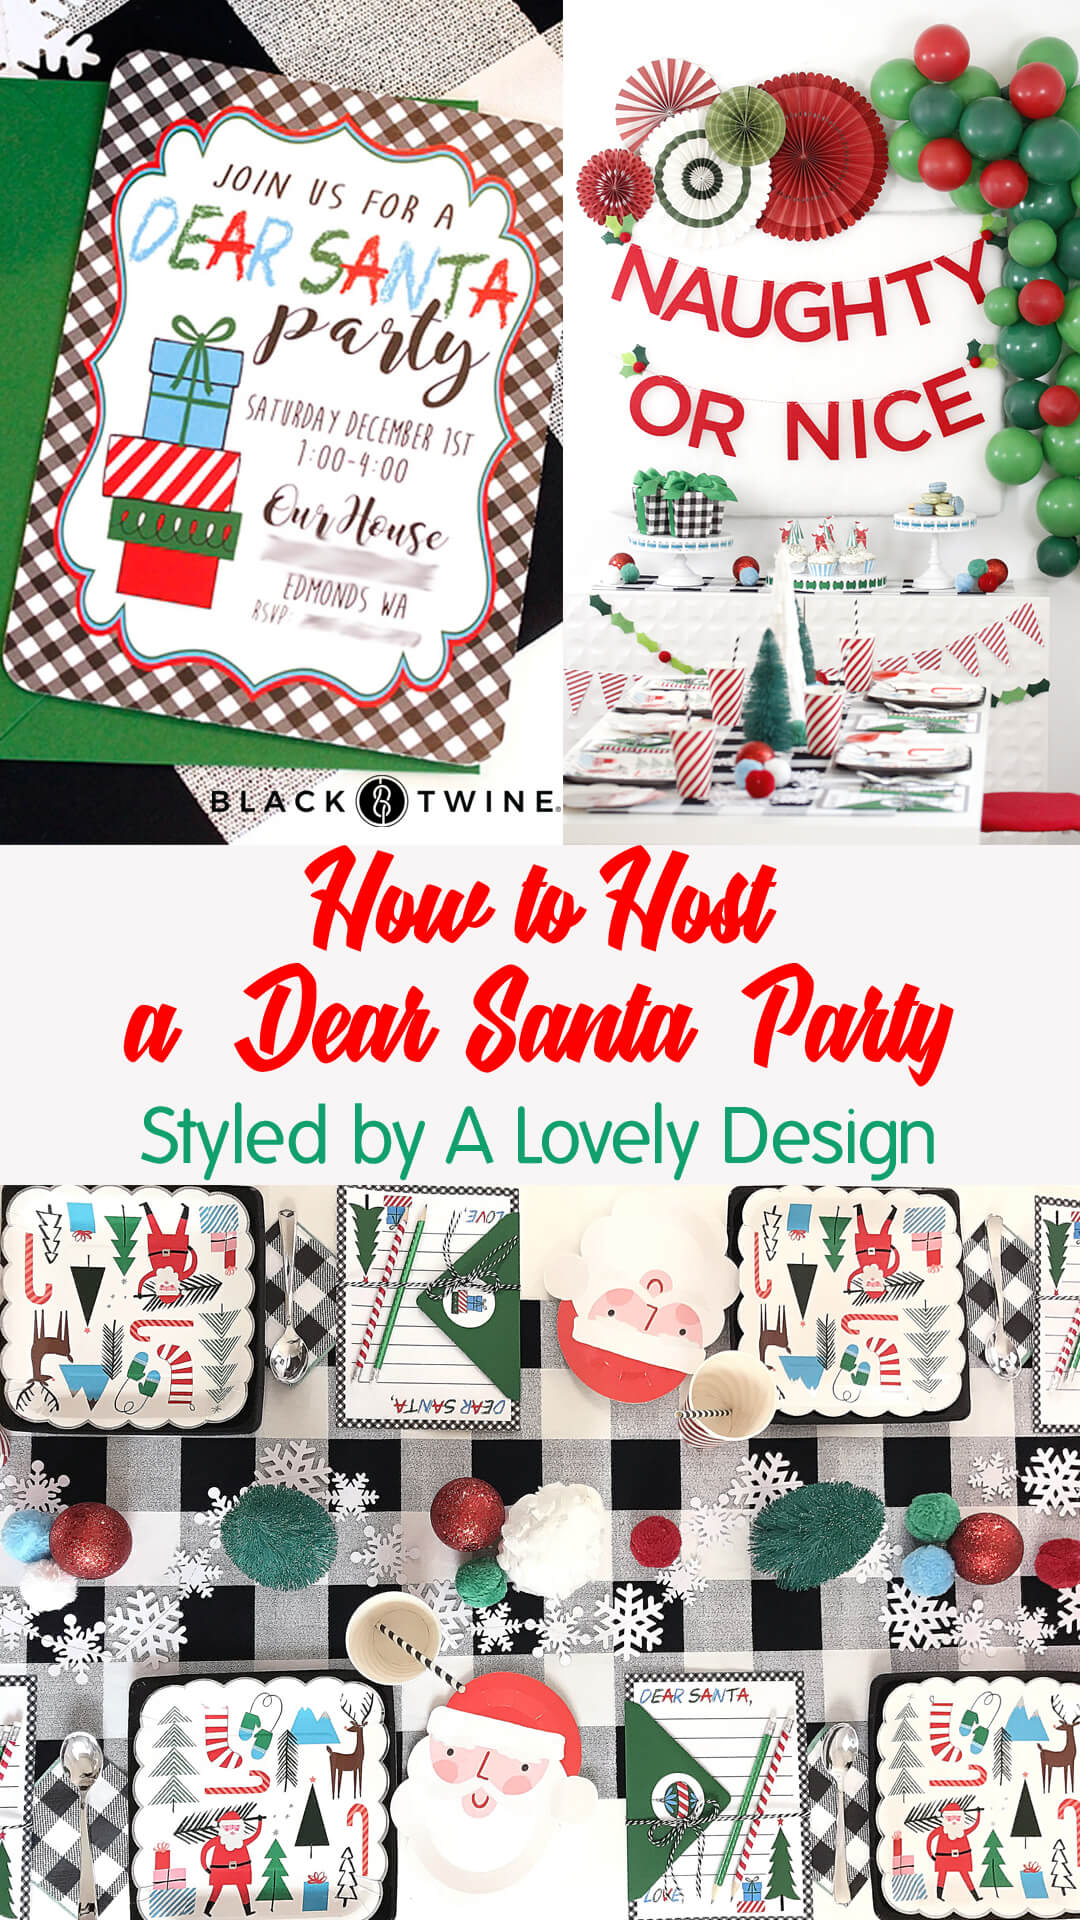 """Invitation, Tablescape and Place Setting from """"Dear Santa"""" Party Styled by A Lovely Design 